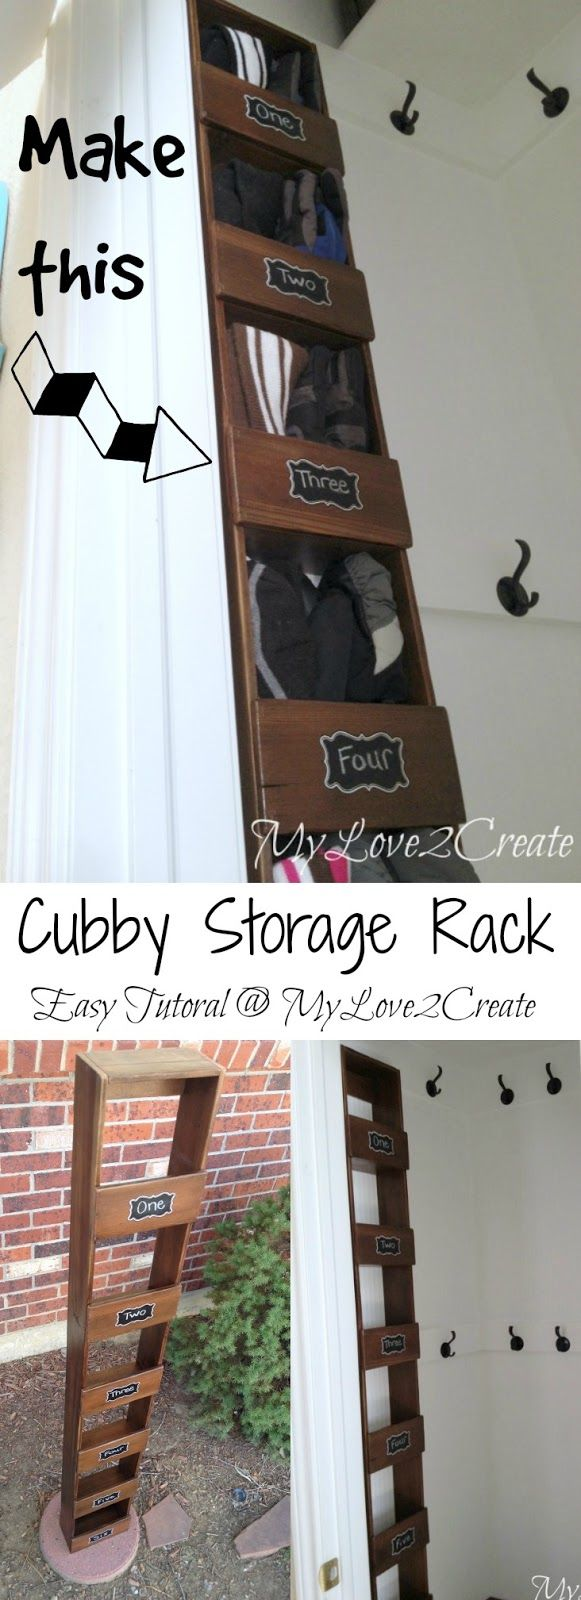 A super easy tutorial to make a cubby storage rack.  What a great way to store your kids hats and gloves.  I need this!!  - at MyLove2Create